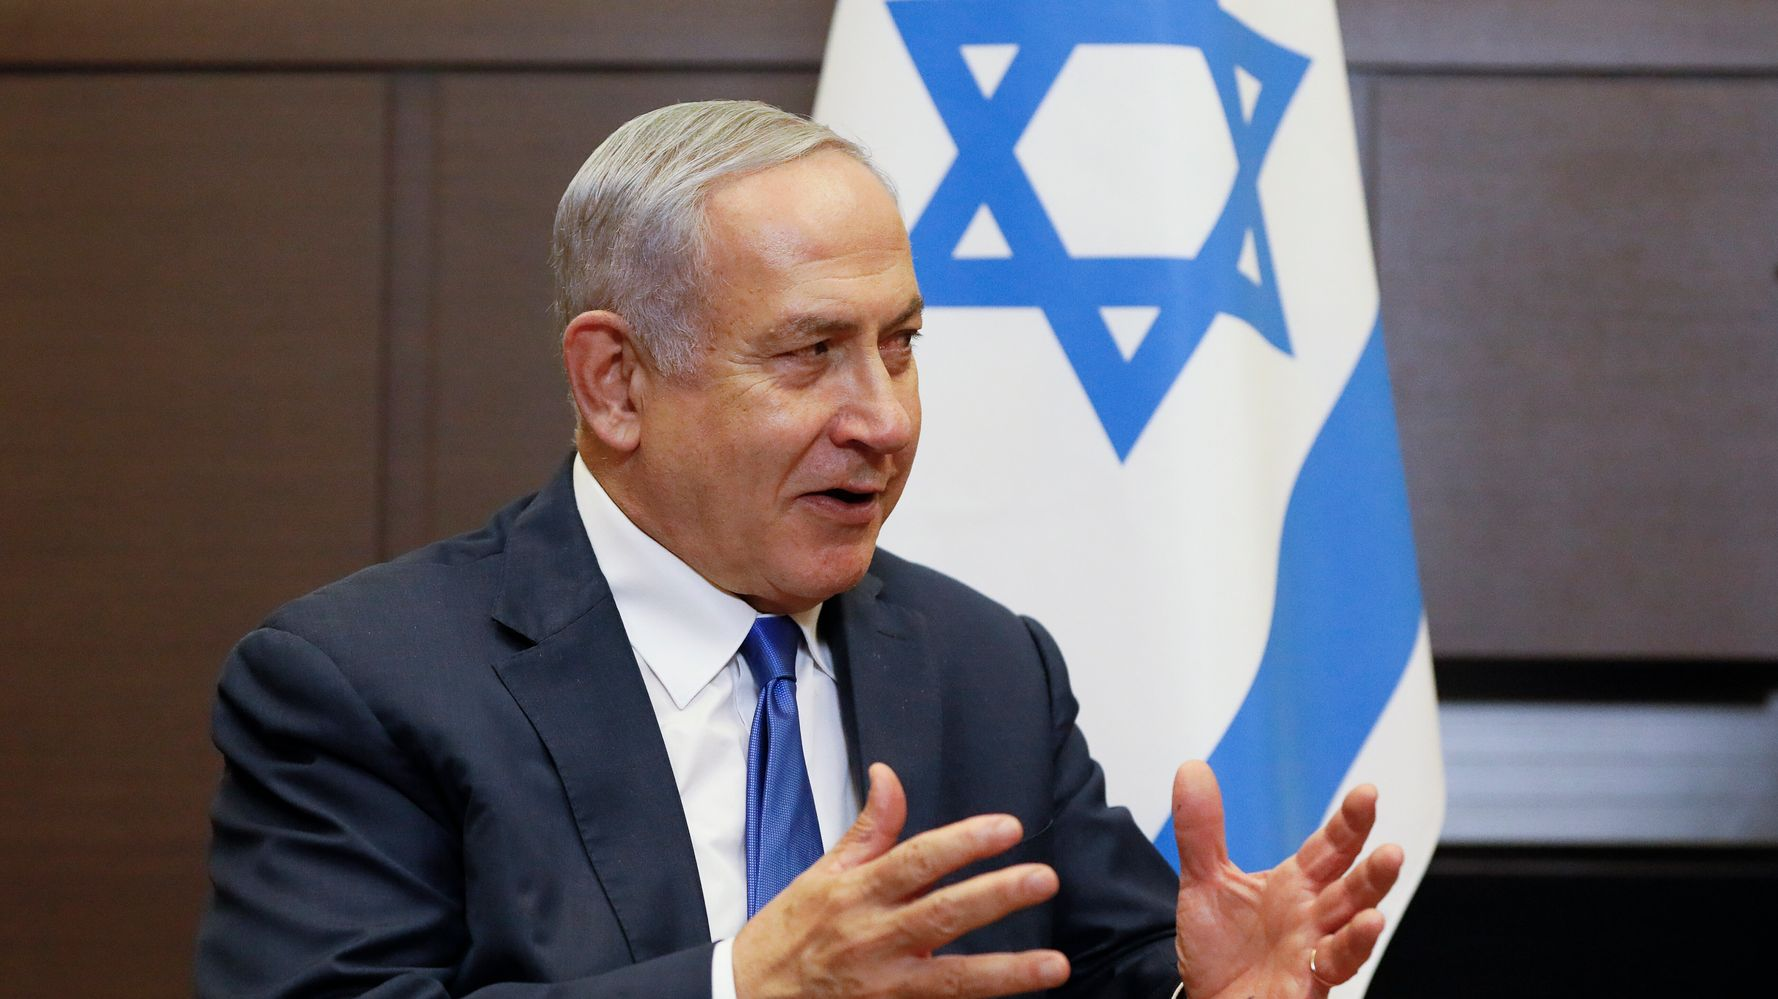 Westlake Legal Group 5d7dfd5a3b0000039fd3ccc3 Ahead Of Do-Over Election, Embattled Netanyahu In Fight Of His Political Life